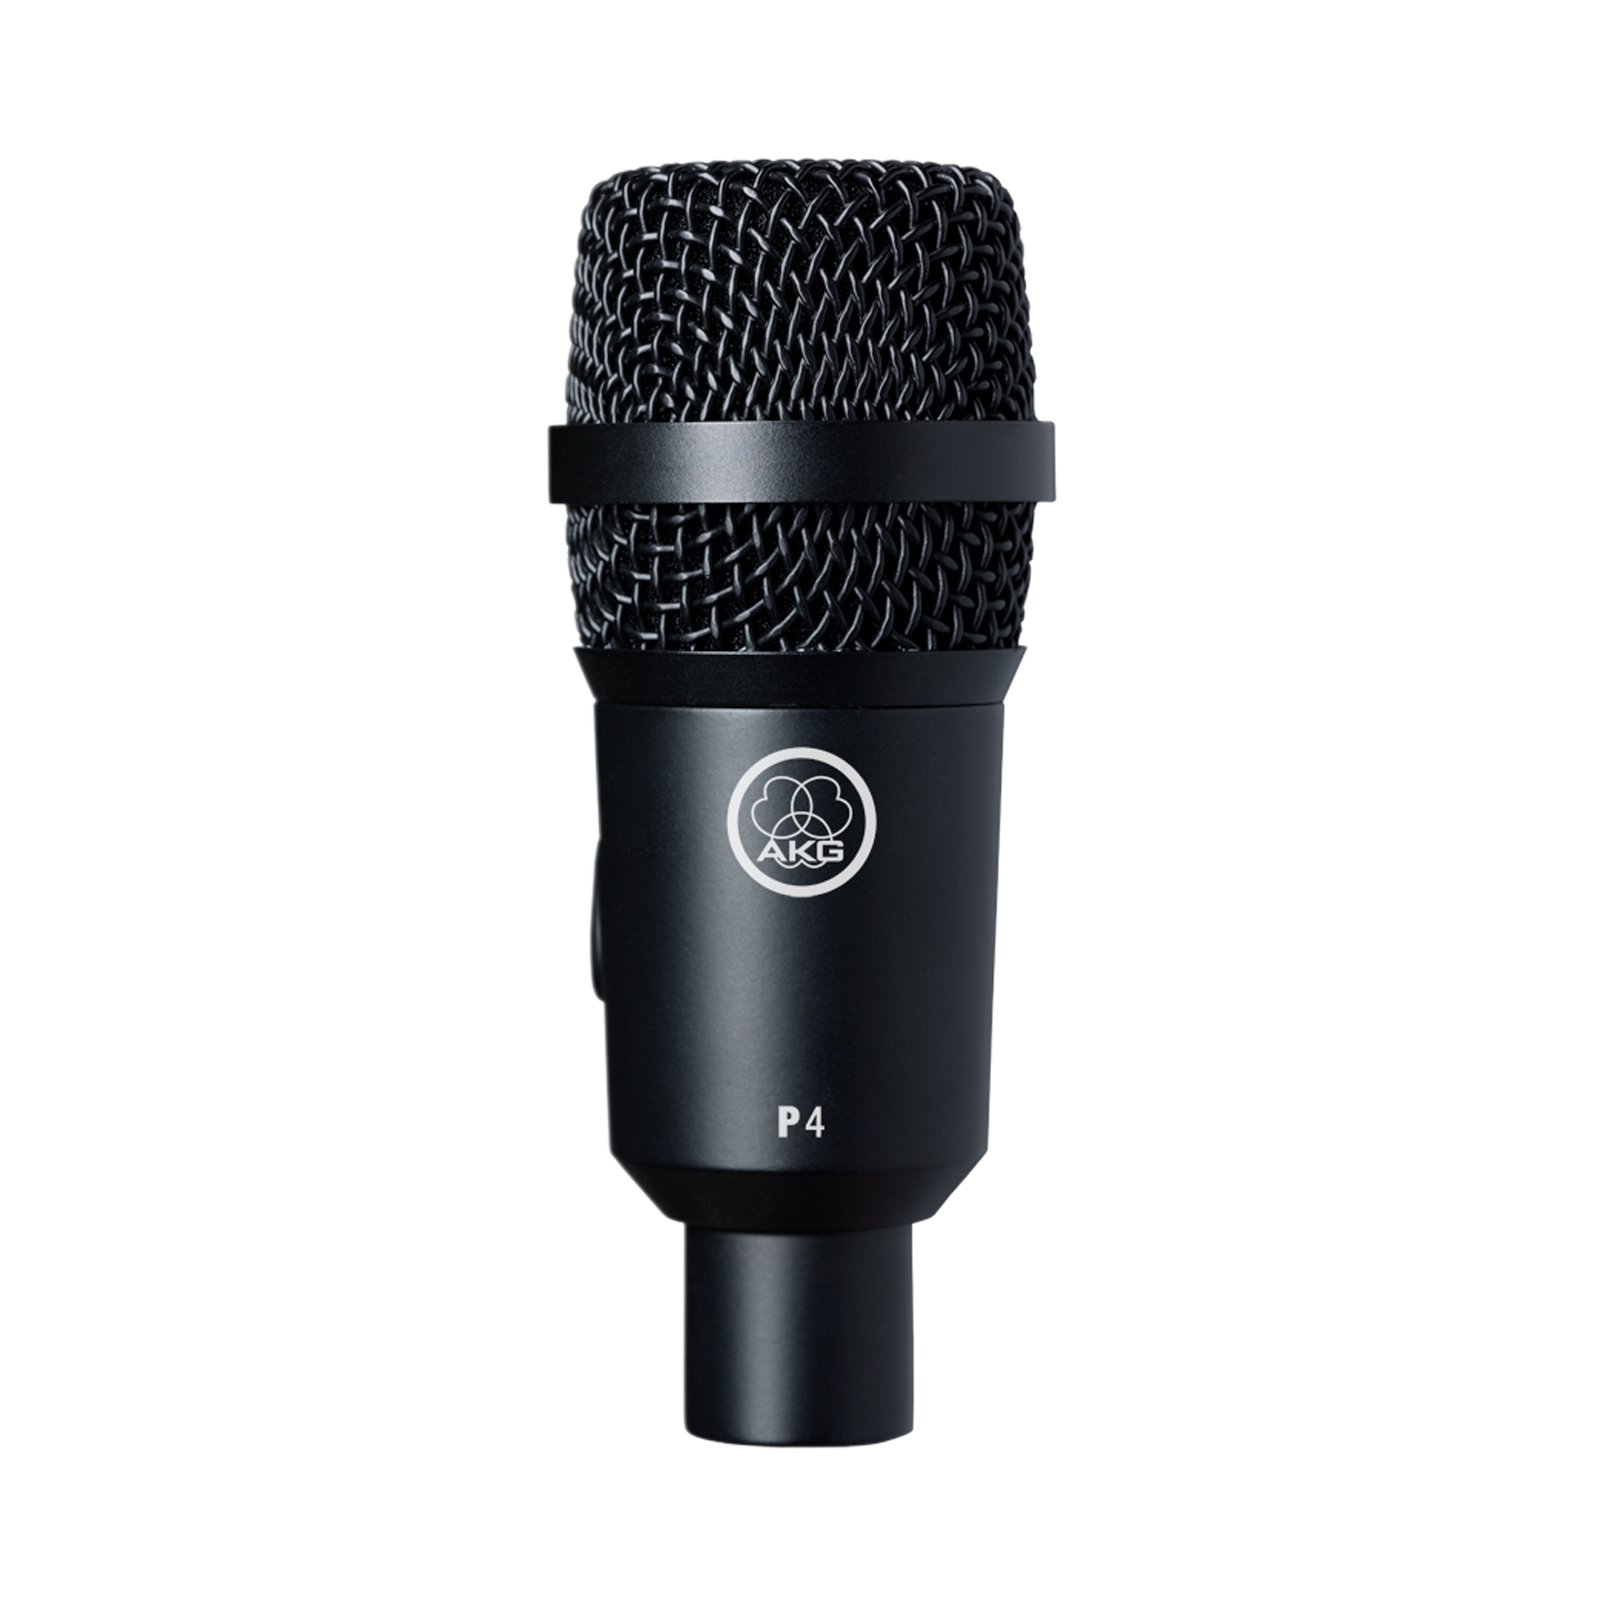 P4 - Black - High-performance dynamic instrument microphone - Hero